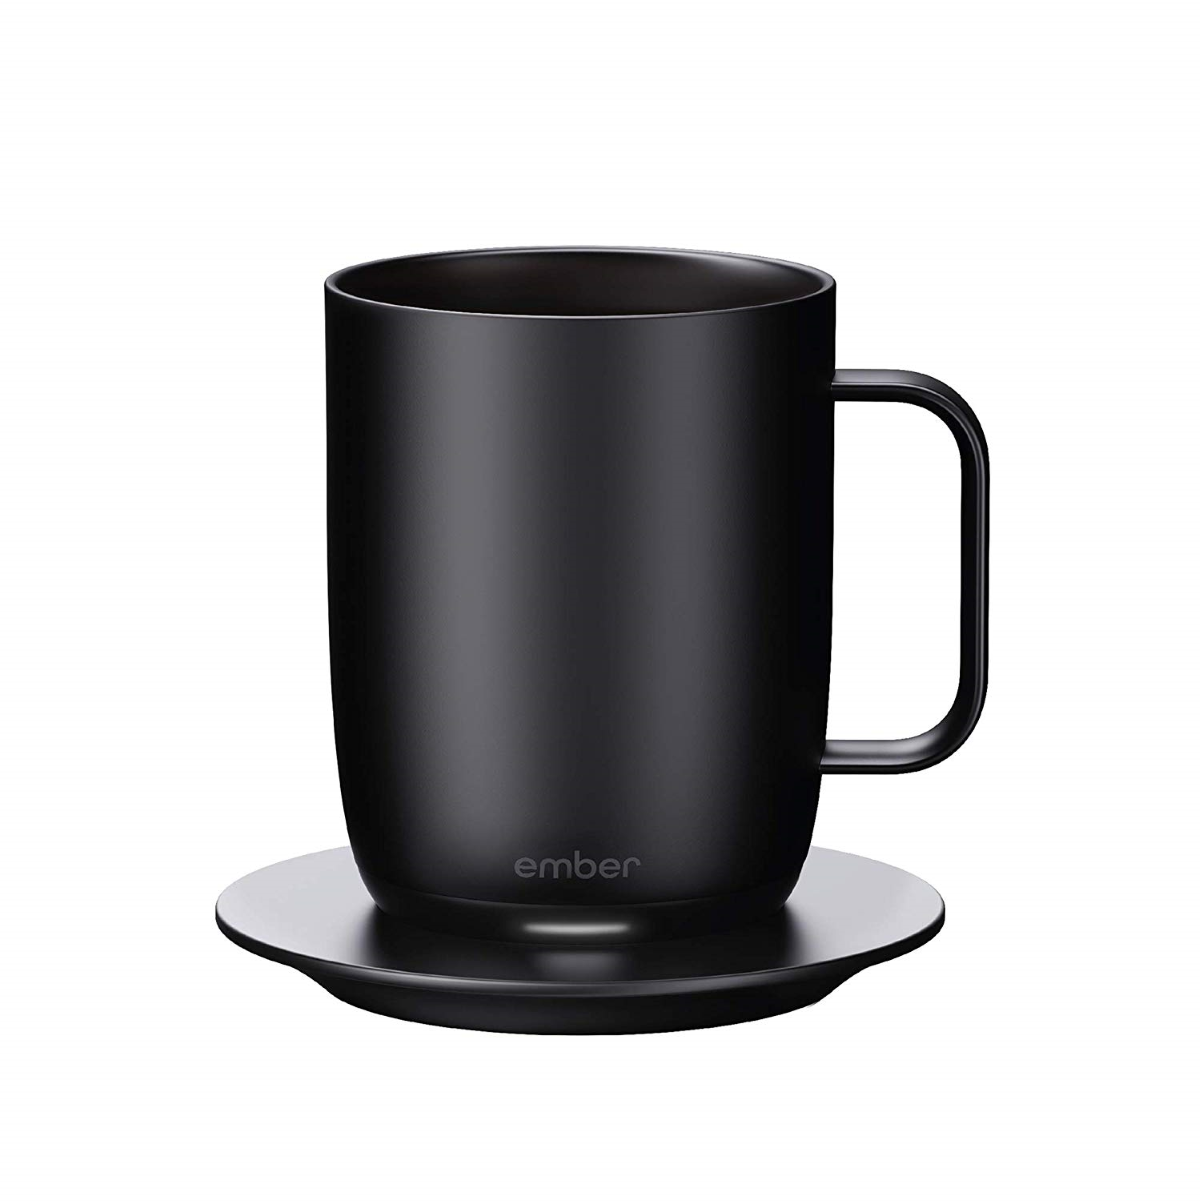 Ember Mug 2 - Minimalist Design with simple LED